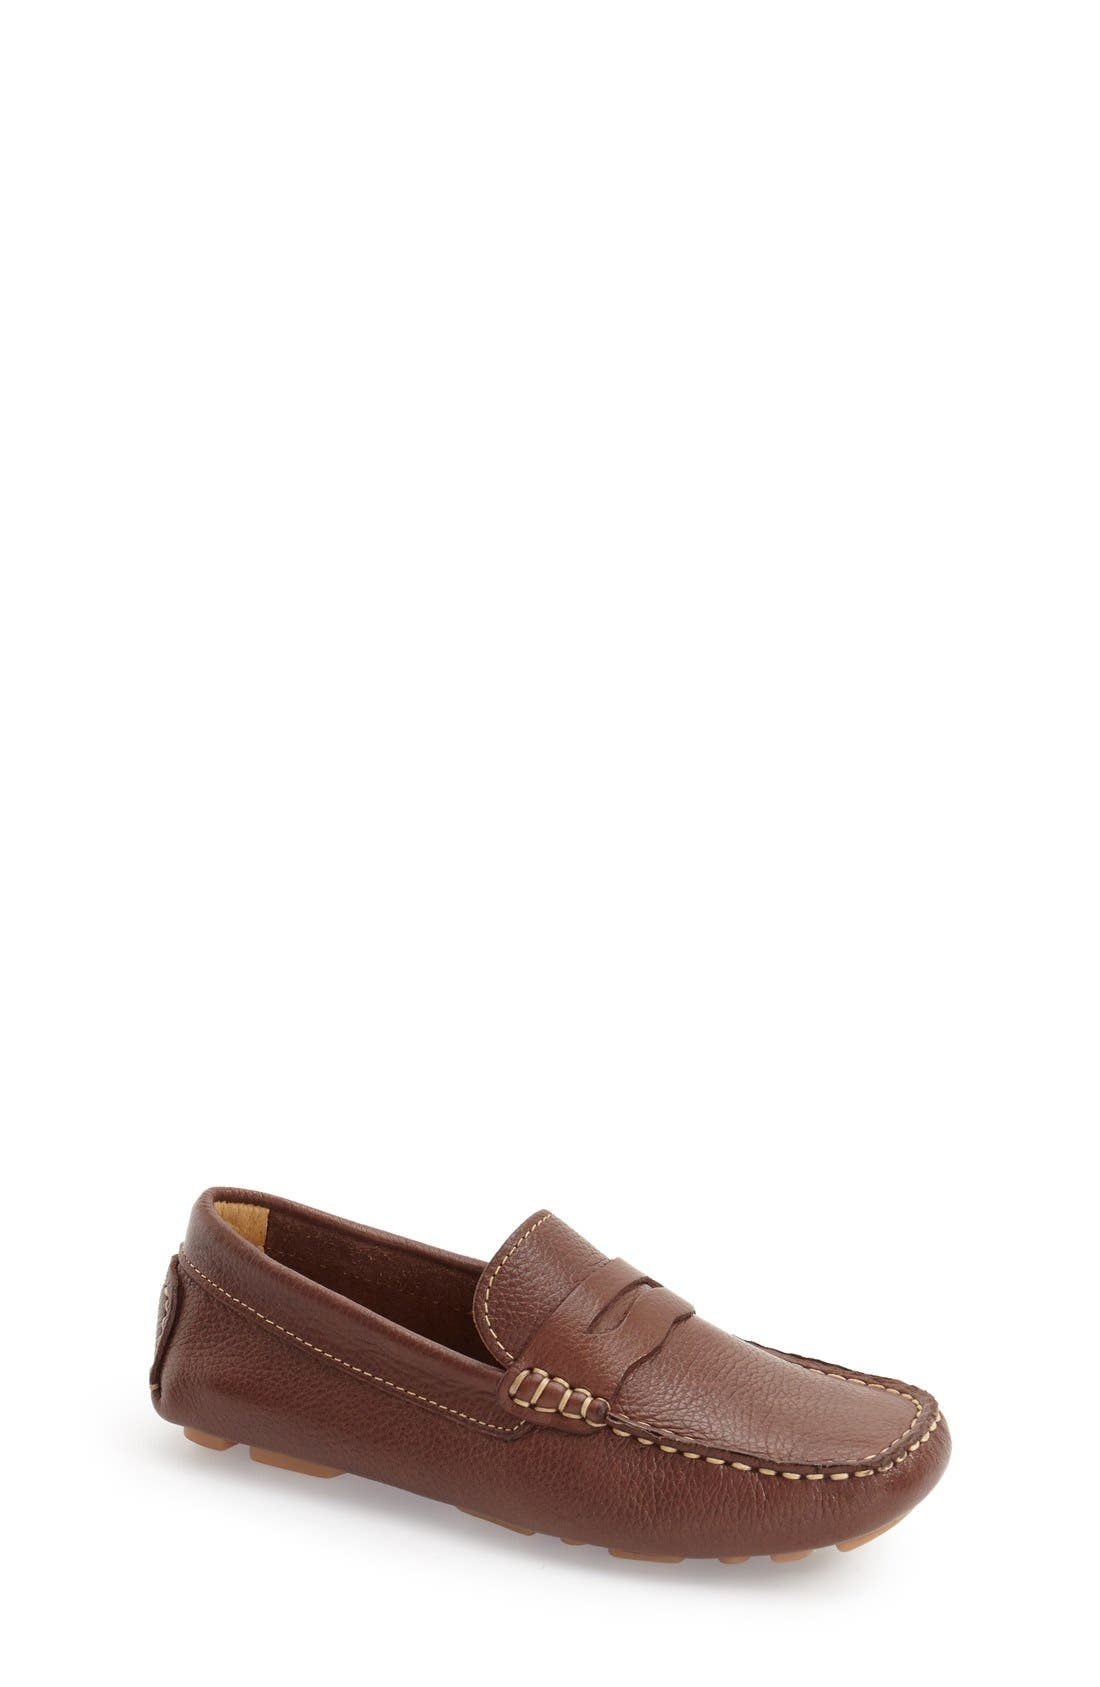 C2 BY CALIBRATE 'Matteo' Loafer